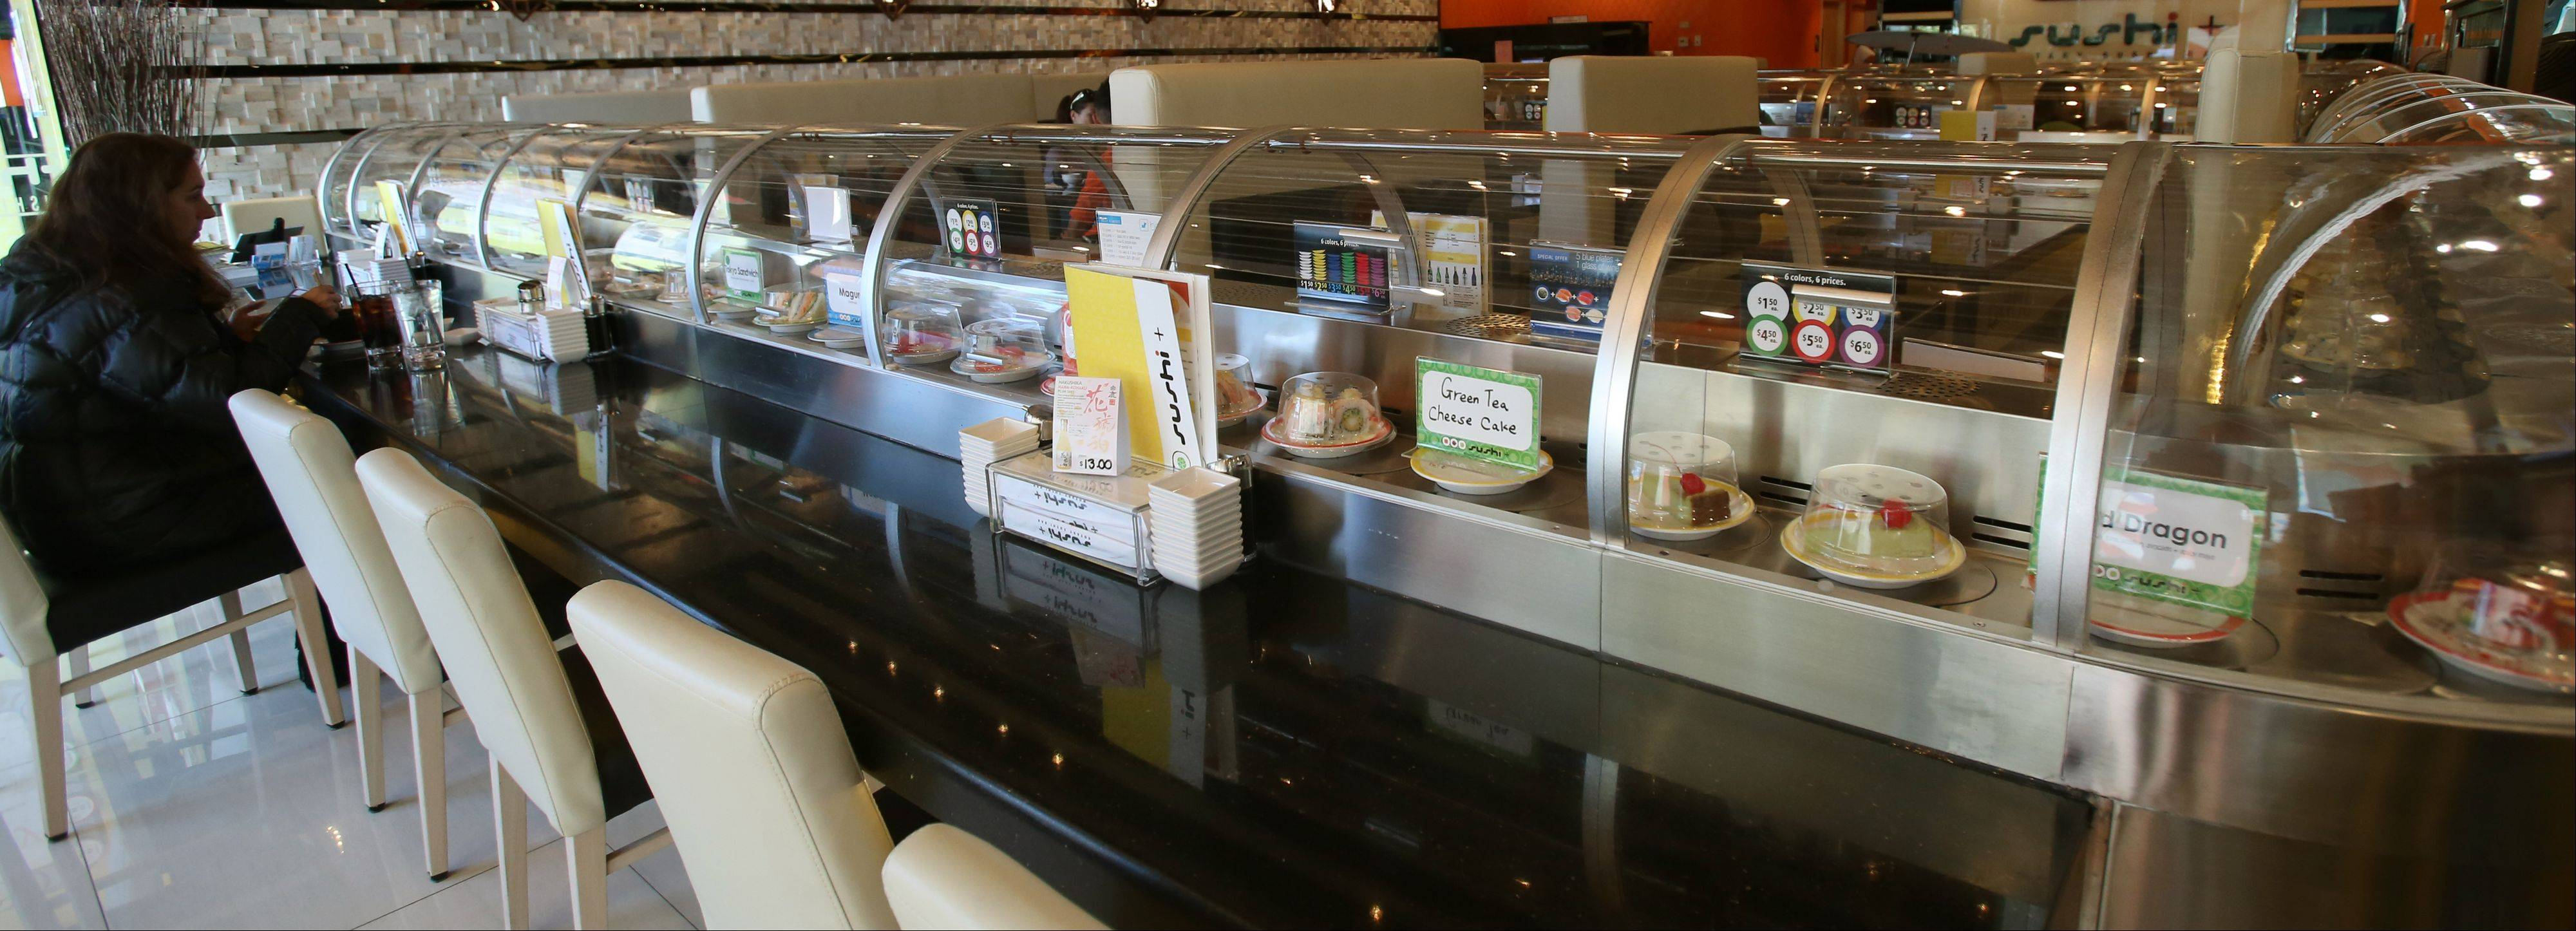 A seemingly endless stream of plates passes by diners on the rotary sushi bar at Sushi + Rotary Sushi Bar in Aurora.